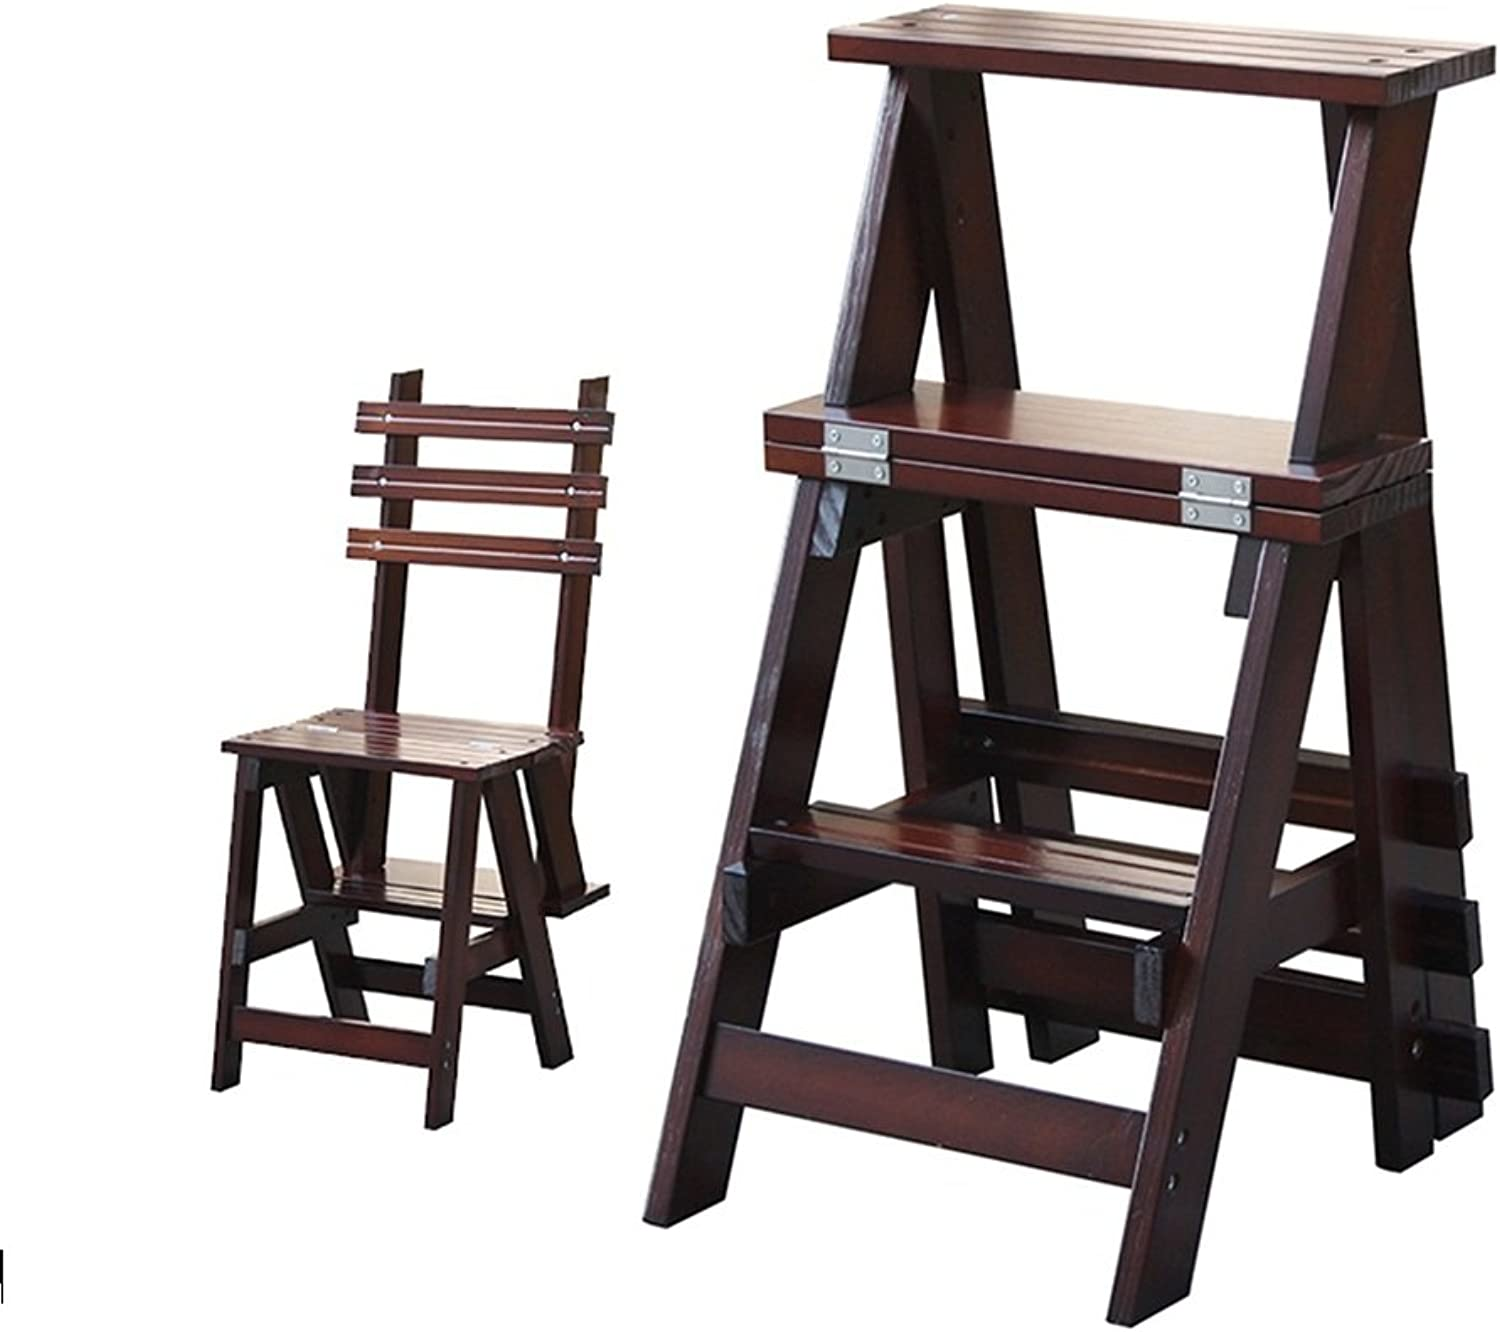 Fashion Solid Wood Folding Chair Multifunction Stepladder Stairway Chair with 3 Steps for Home 344468.5CM Folding Chairs Indoor (color   B)